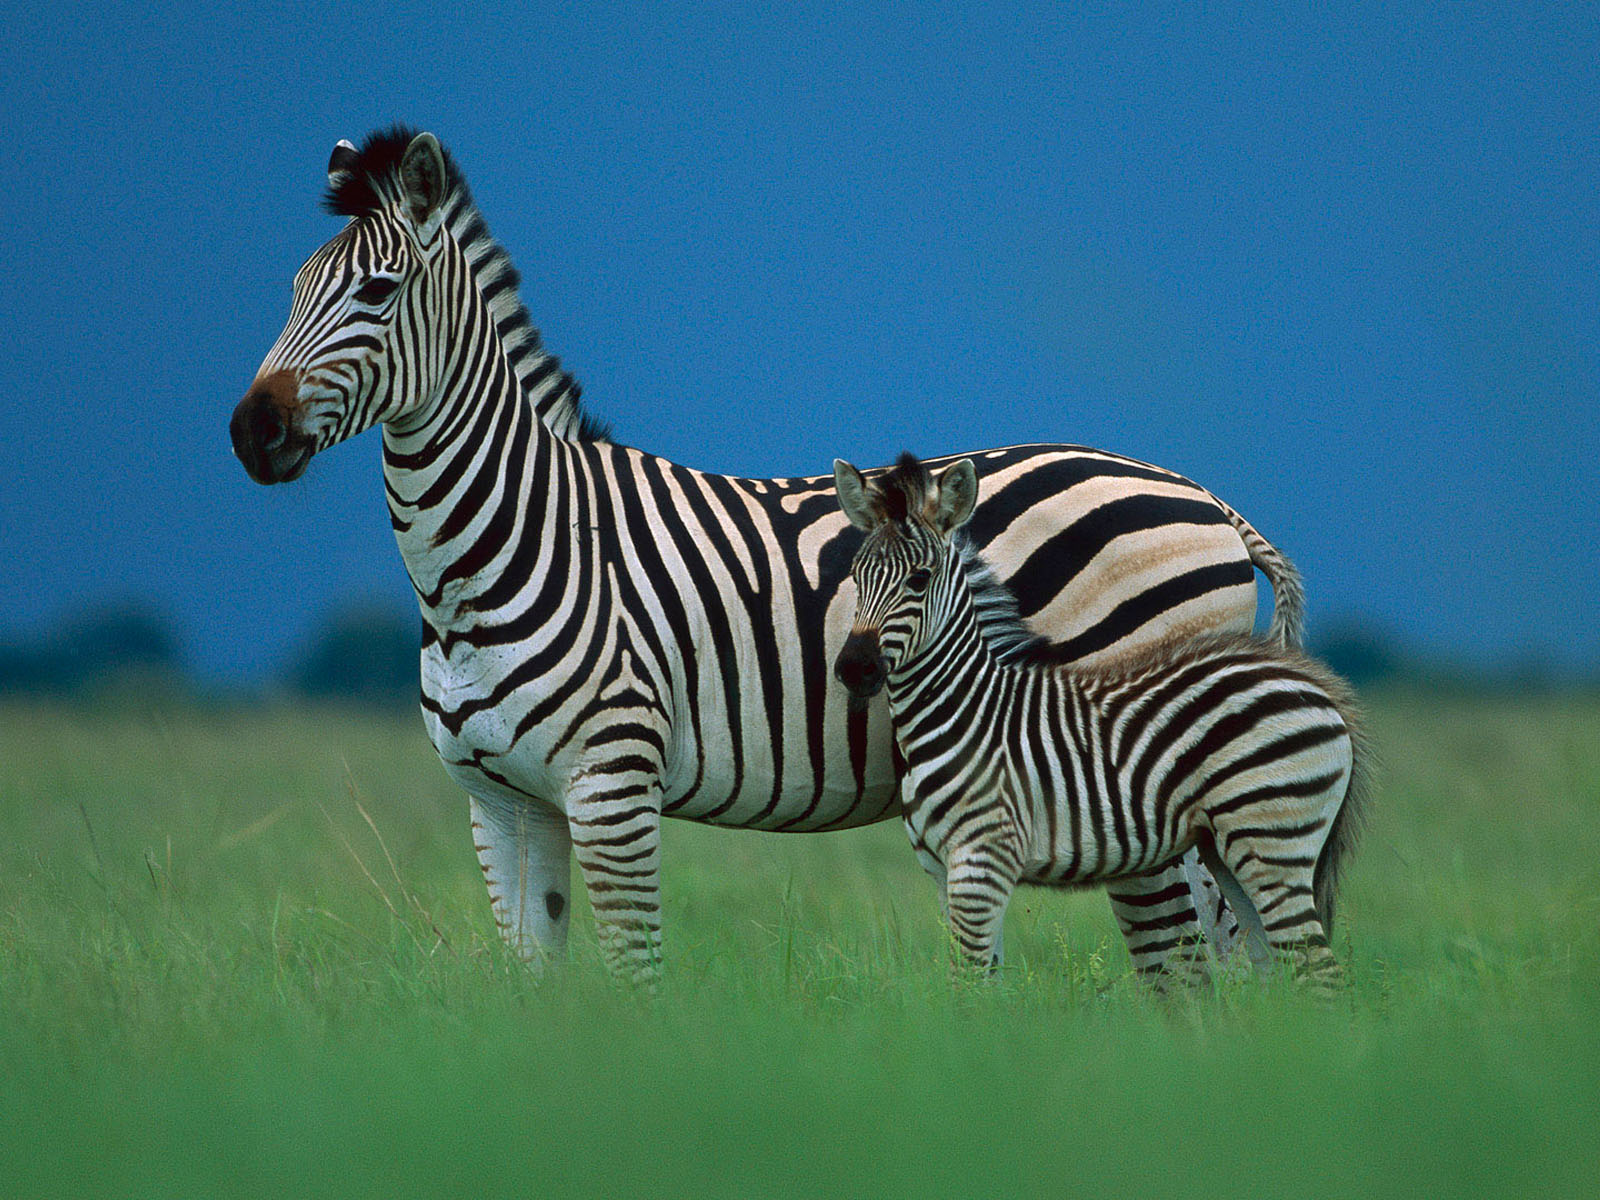 wildlife zebra hd wallpaper 2012. Black Bedroom Furniture Sets. Home Design Ideas